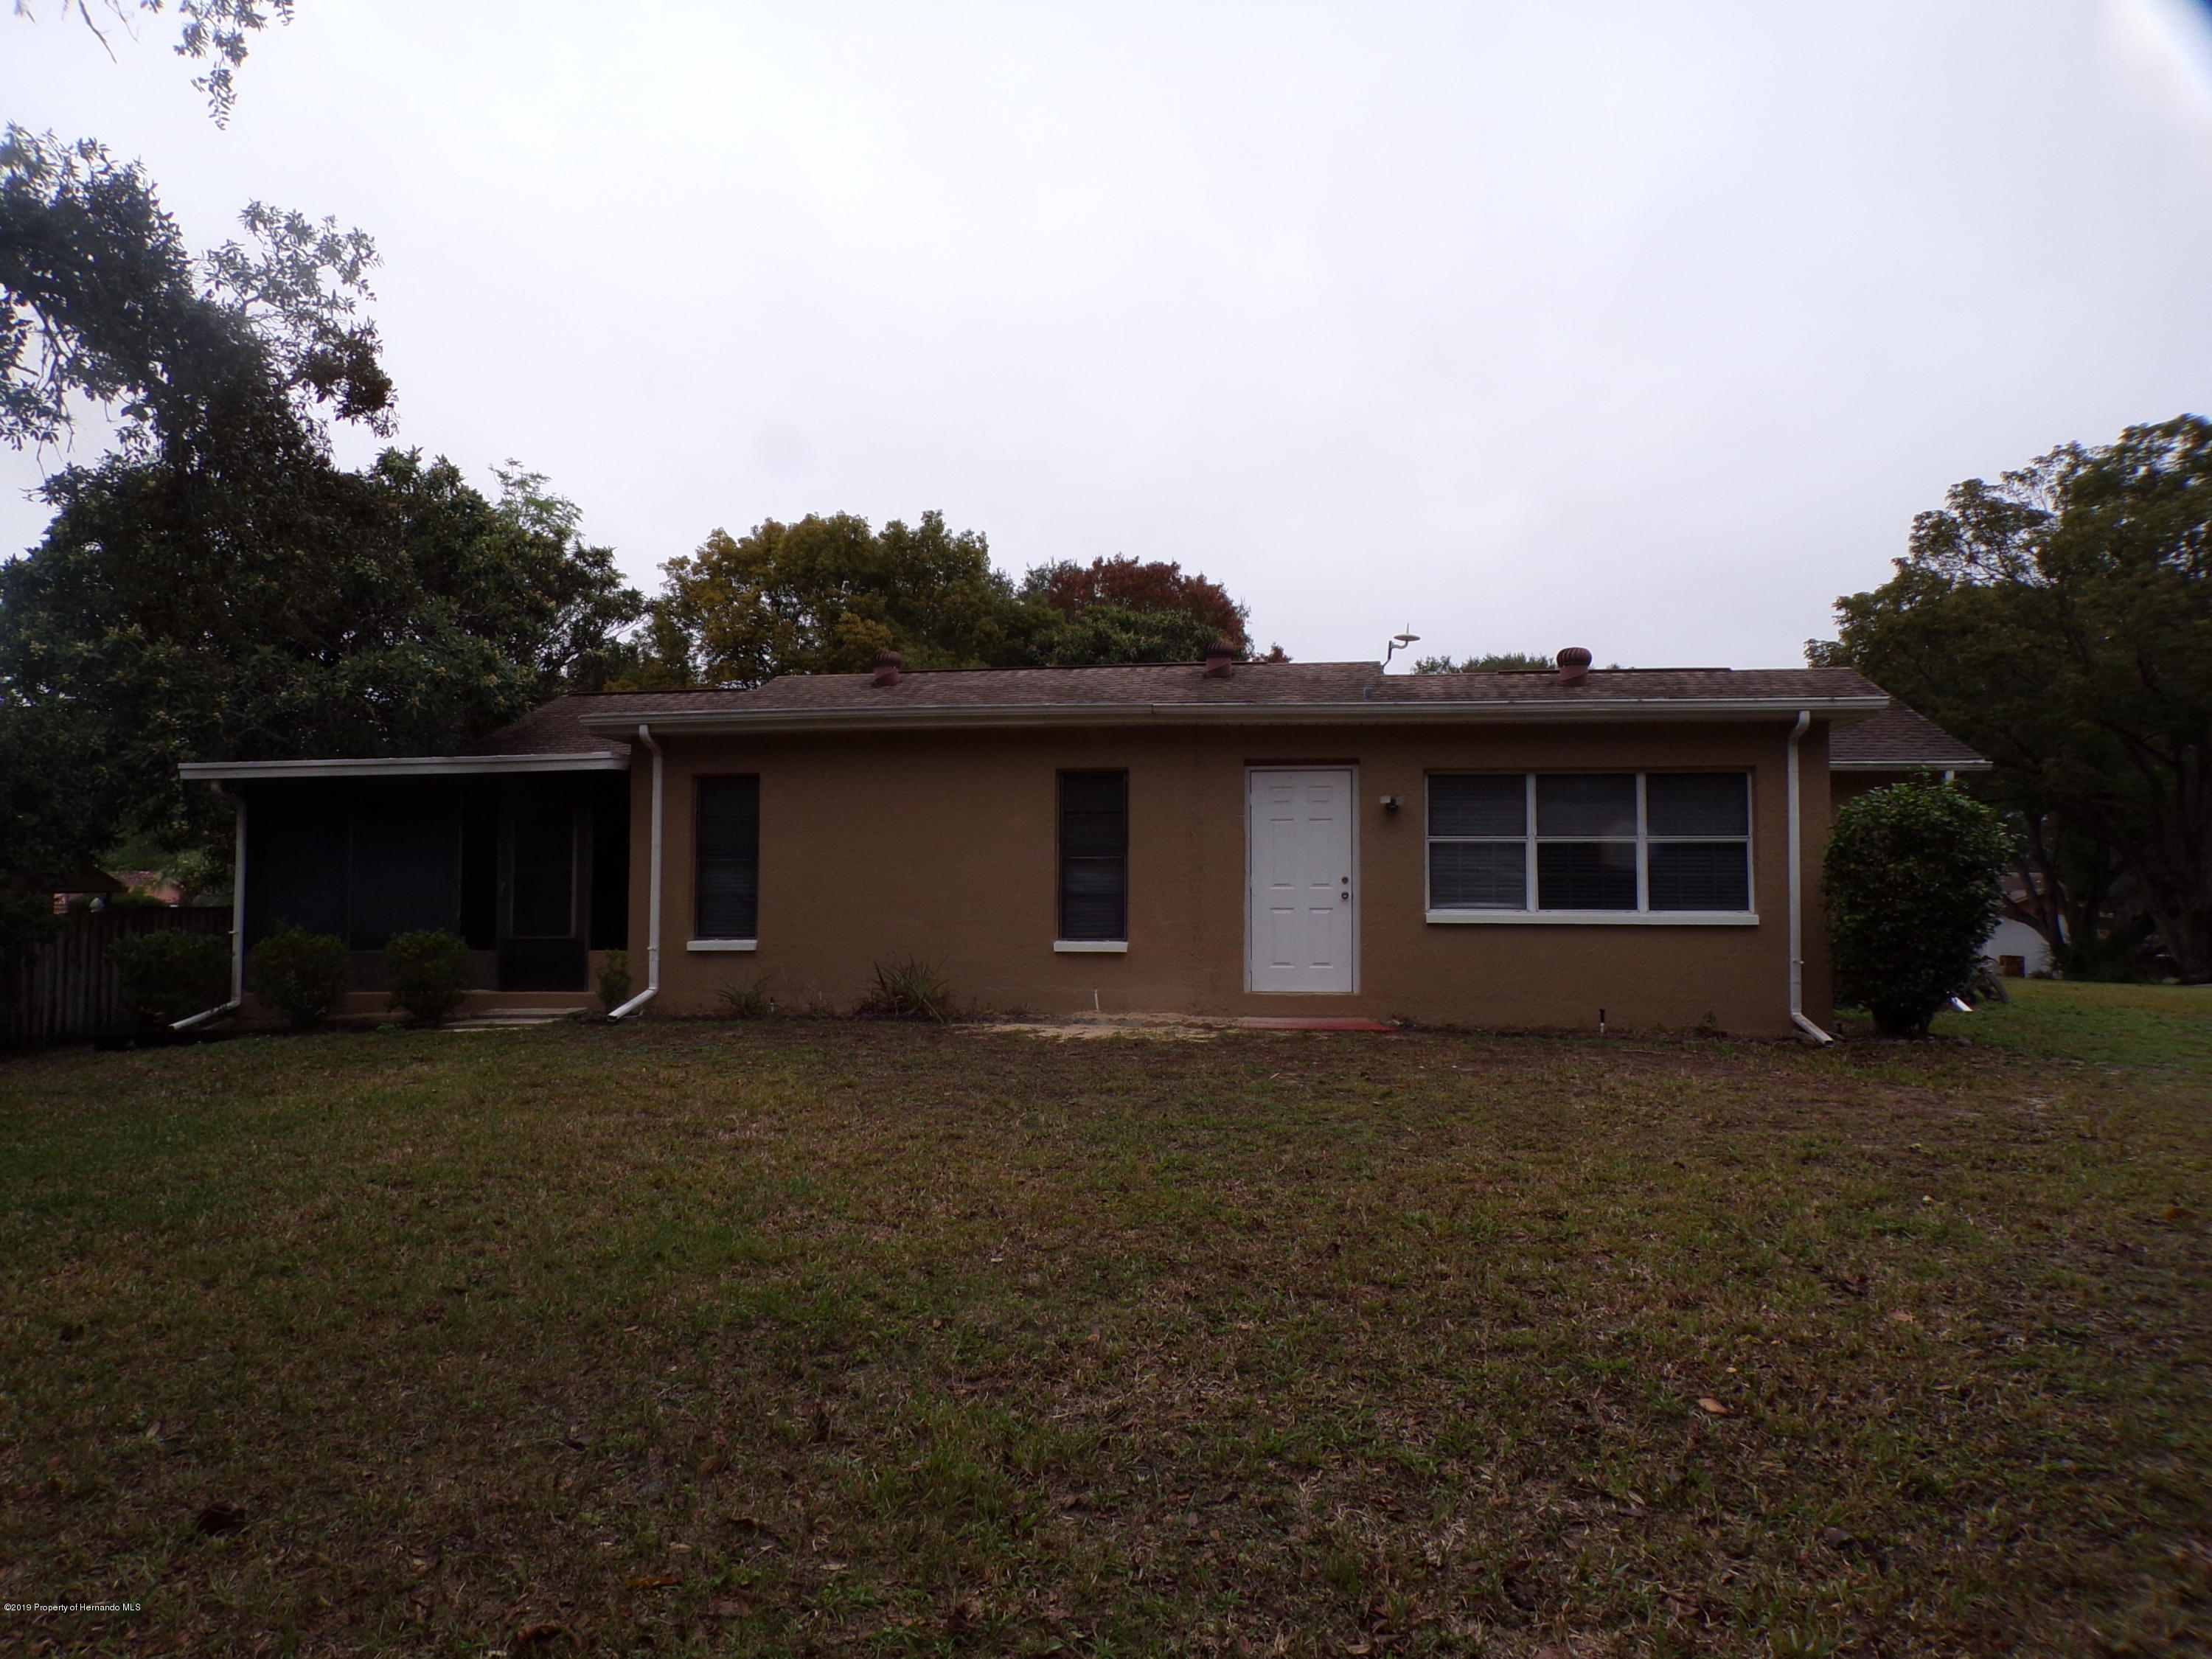 8082 Philatelic Drive, Spring Hill, Florida 34606, 3 Bedrooms Bedrooms, ,2 BathroomsBathrooms,Rental,For Sale,Philatelic,2206106